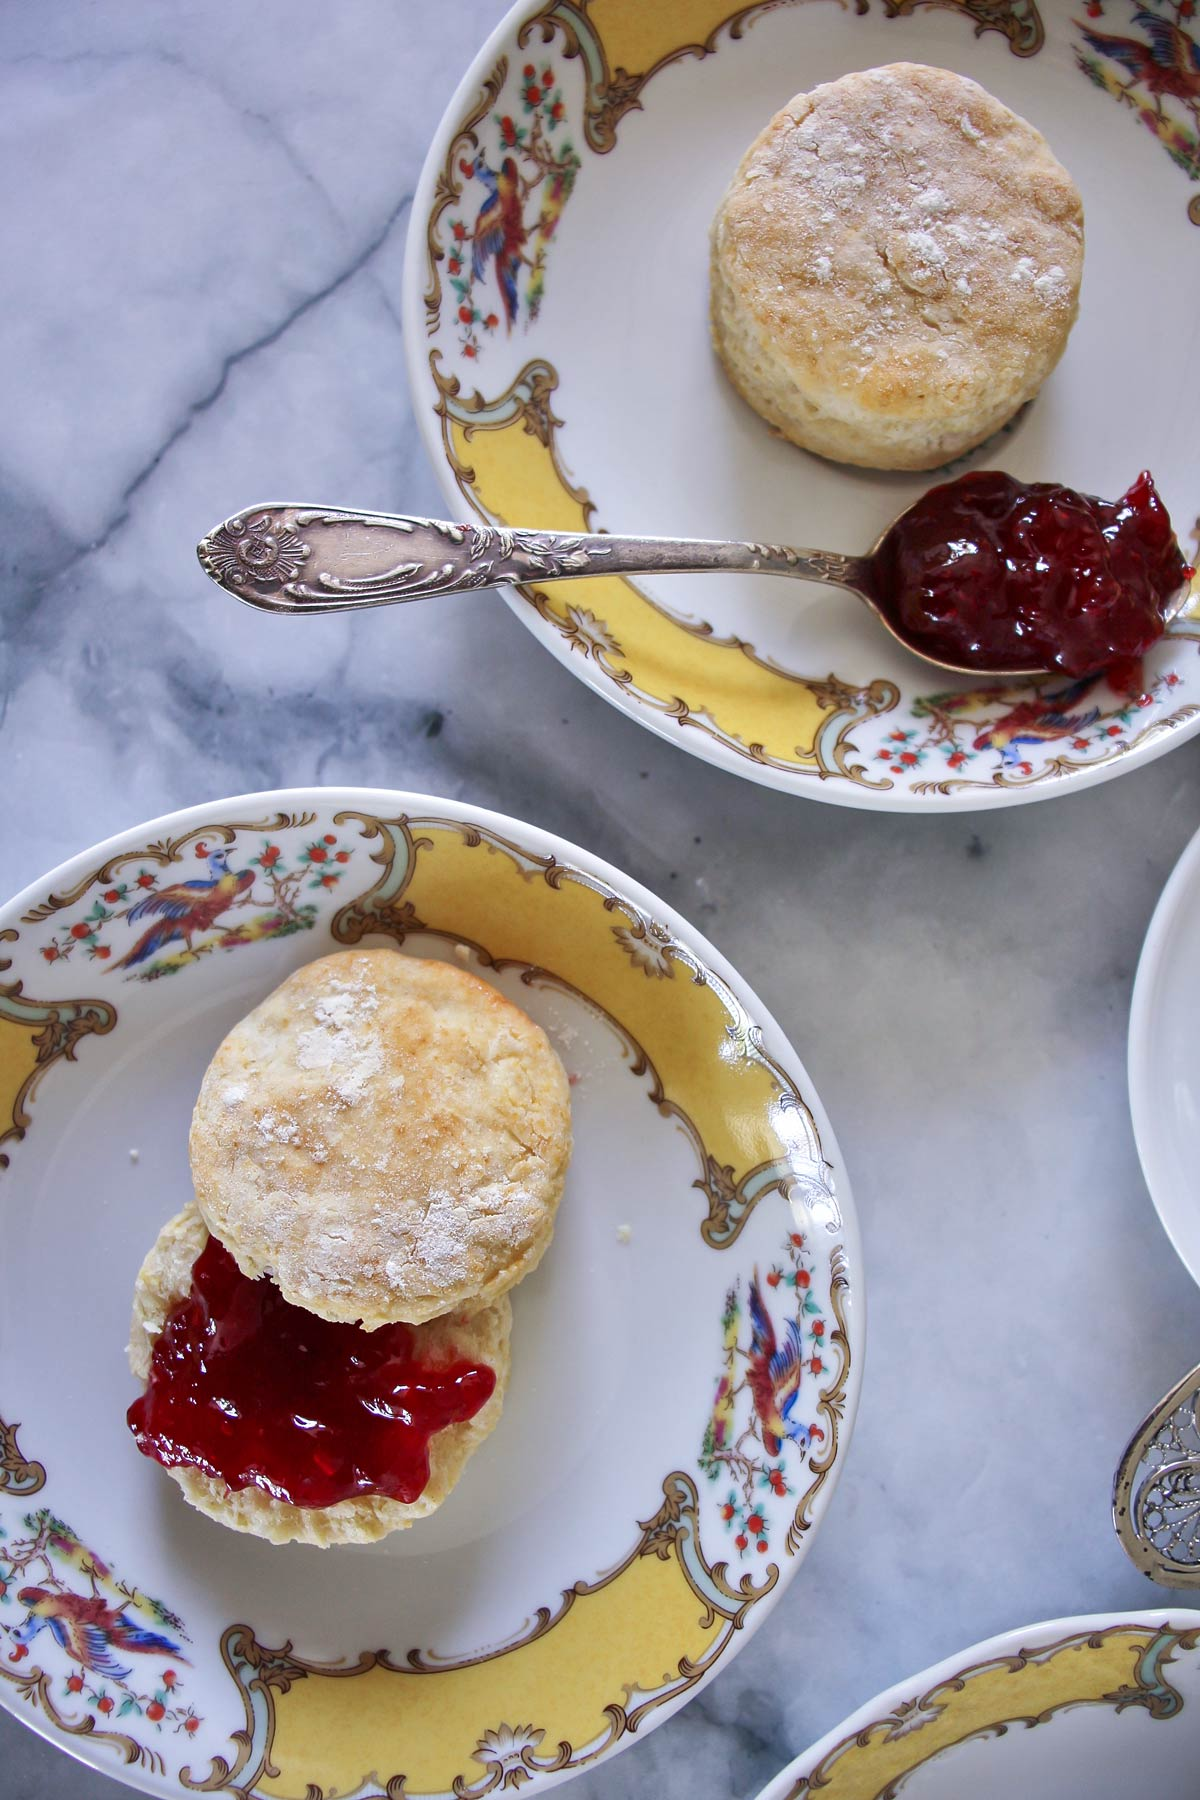 Two dainty afternoon scones served on yellow and white fine china, with strawberry jam